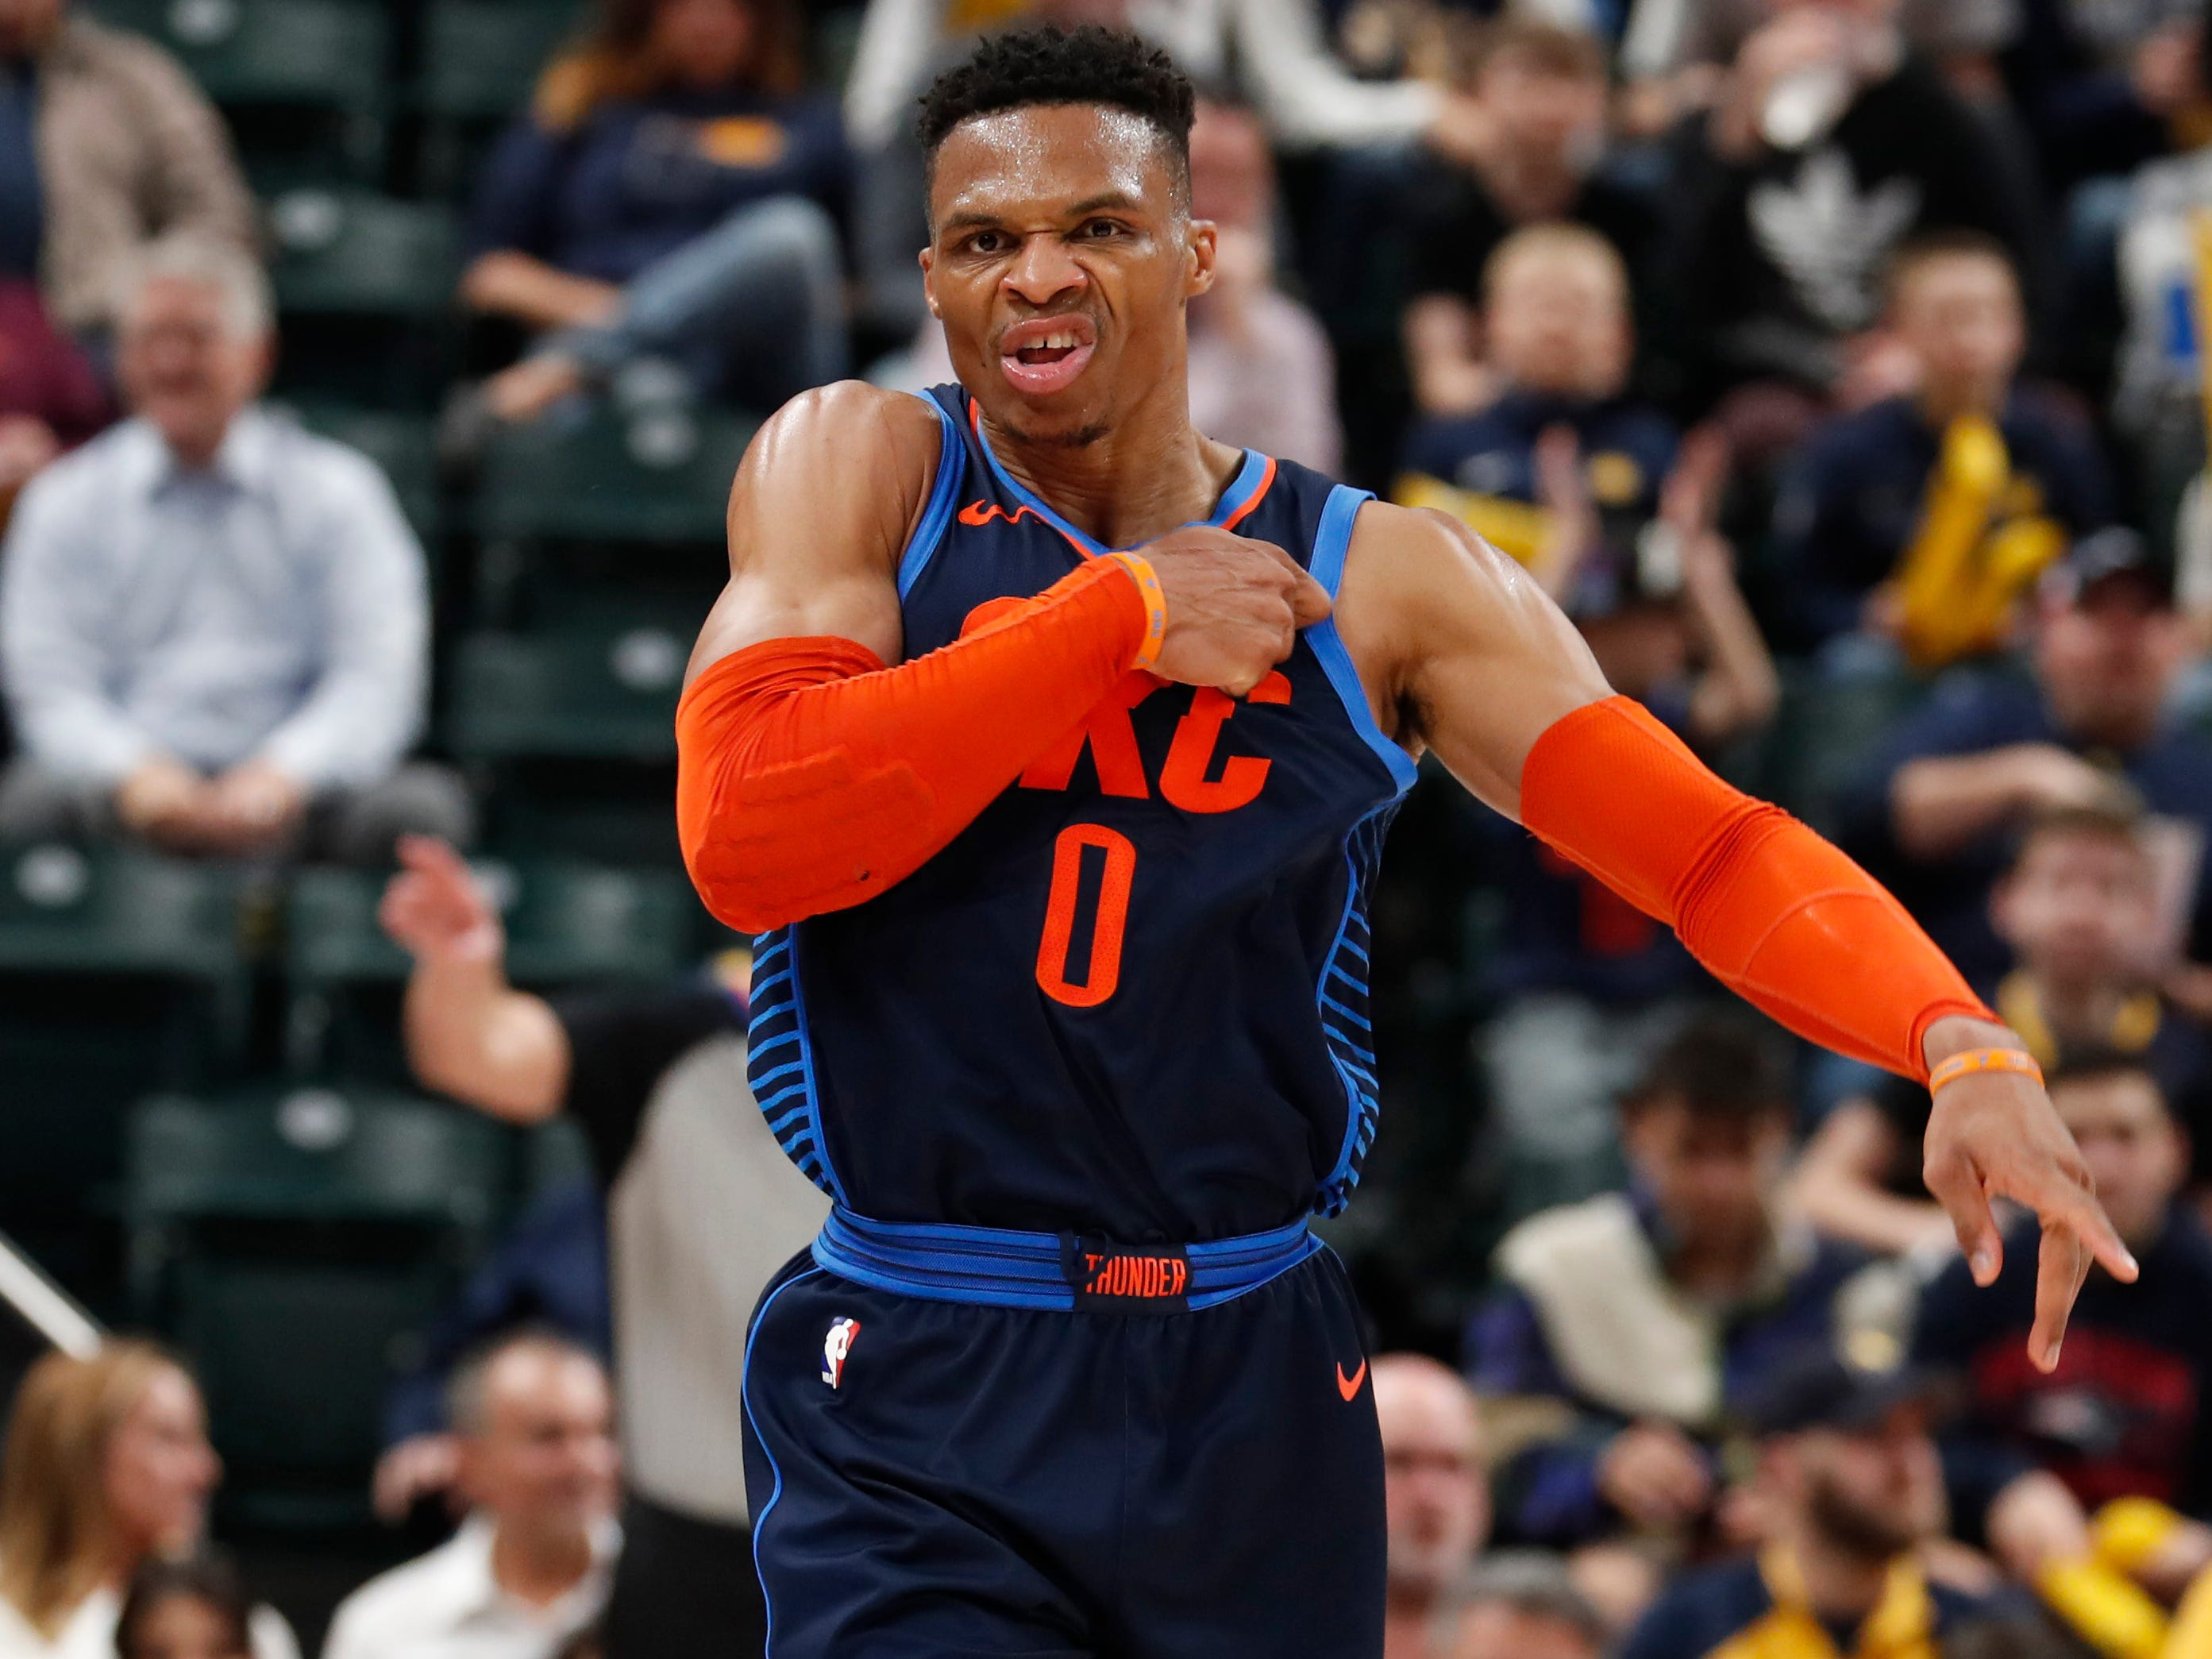 100. Russell Westbrook, Thunder (March 14): 19 points, 14 rebounds, 11 assists in 108-106 loss to Pacers (27th of season).